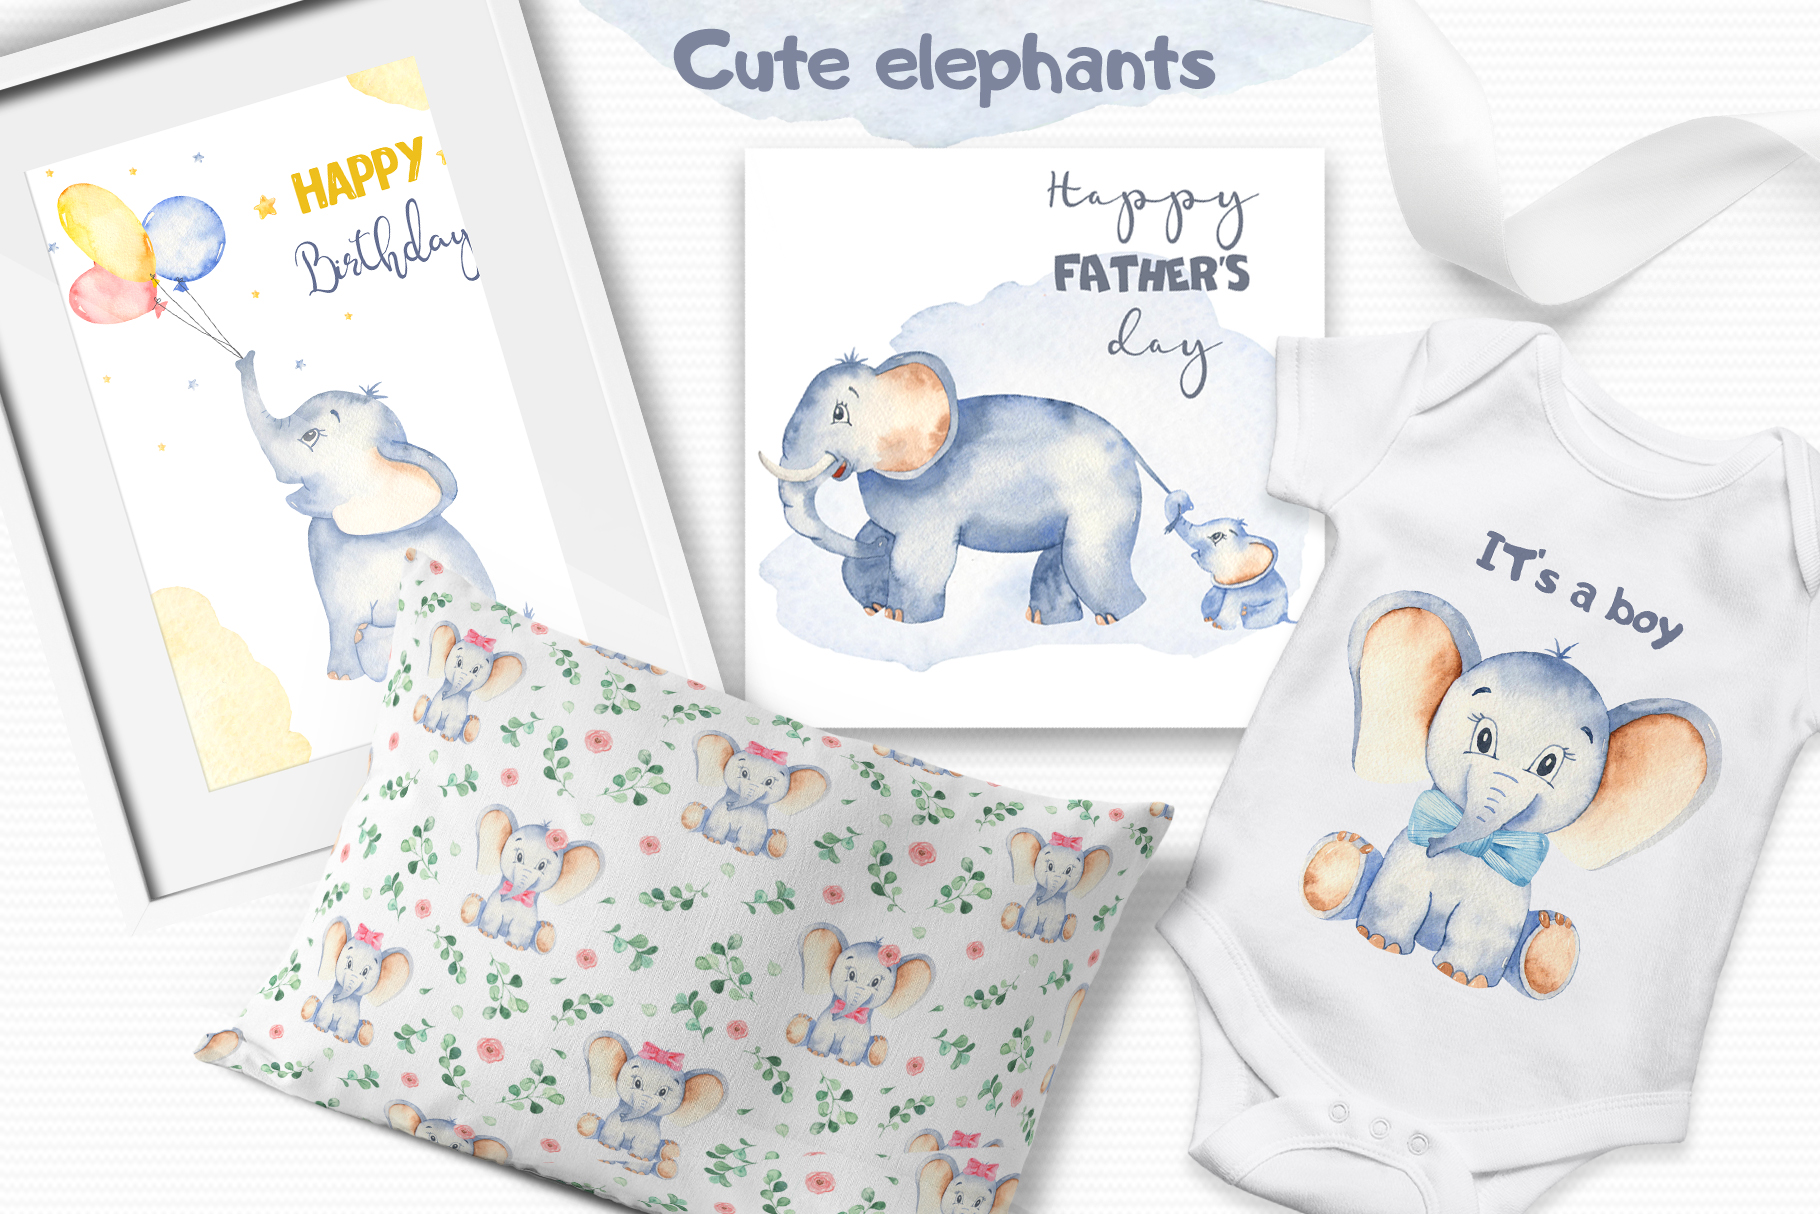 Cute elephants watercolor collection clipart example image 6